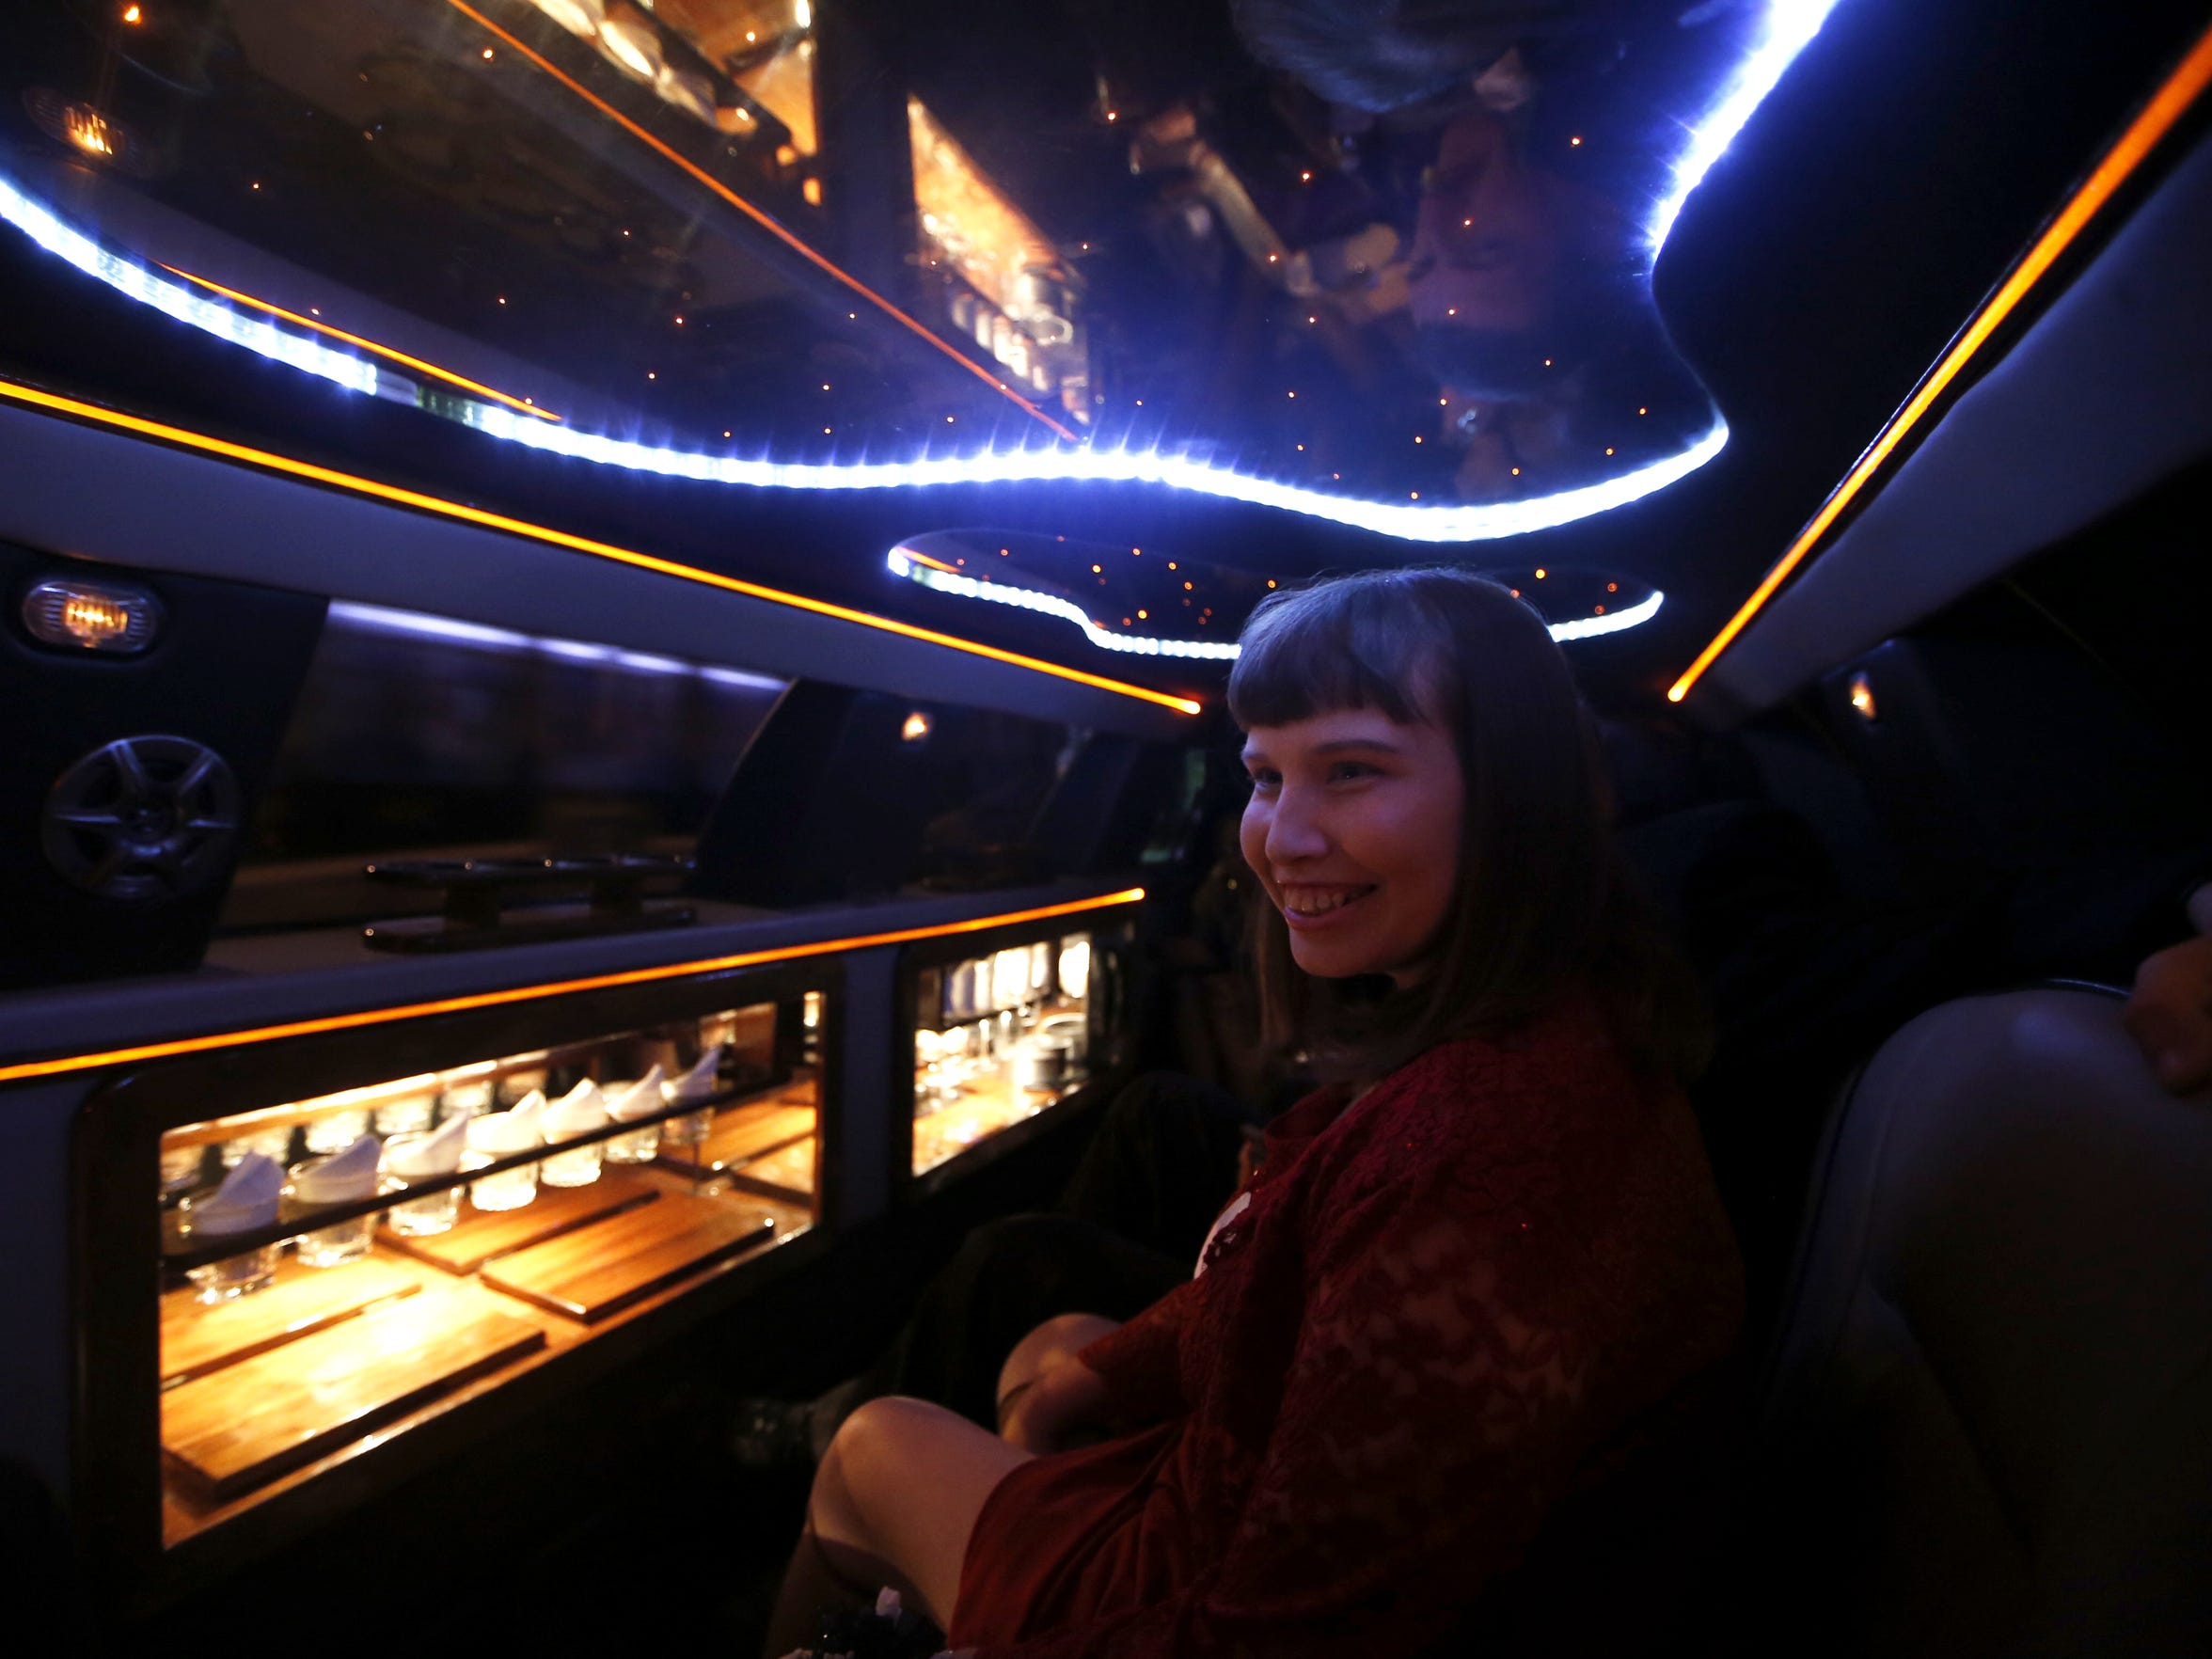 Tasha Mathis smiles over at Charlie during their limo ride, part of the activities during the Night to Shine special needs prom at the Genesis Church on Friday, Feb. 12, 2016.